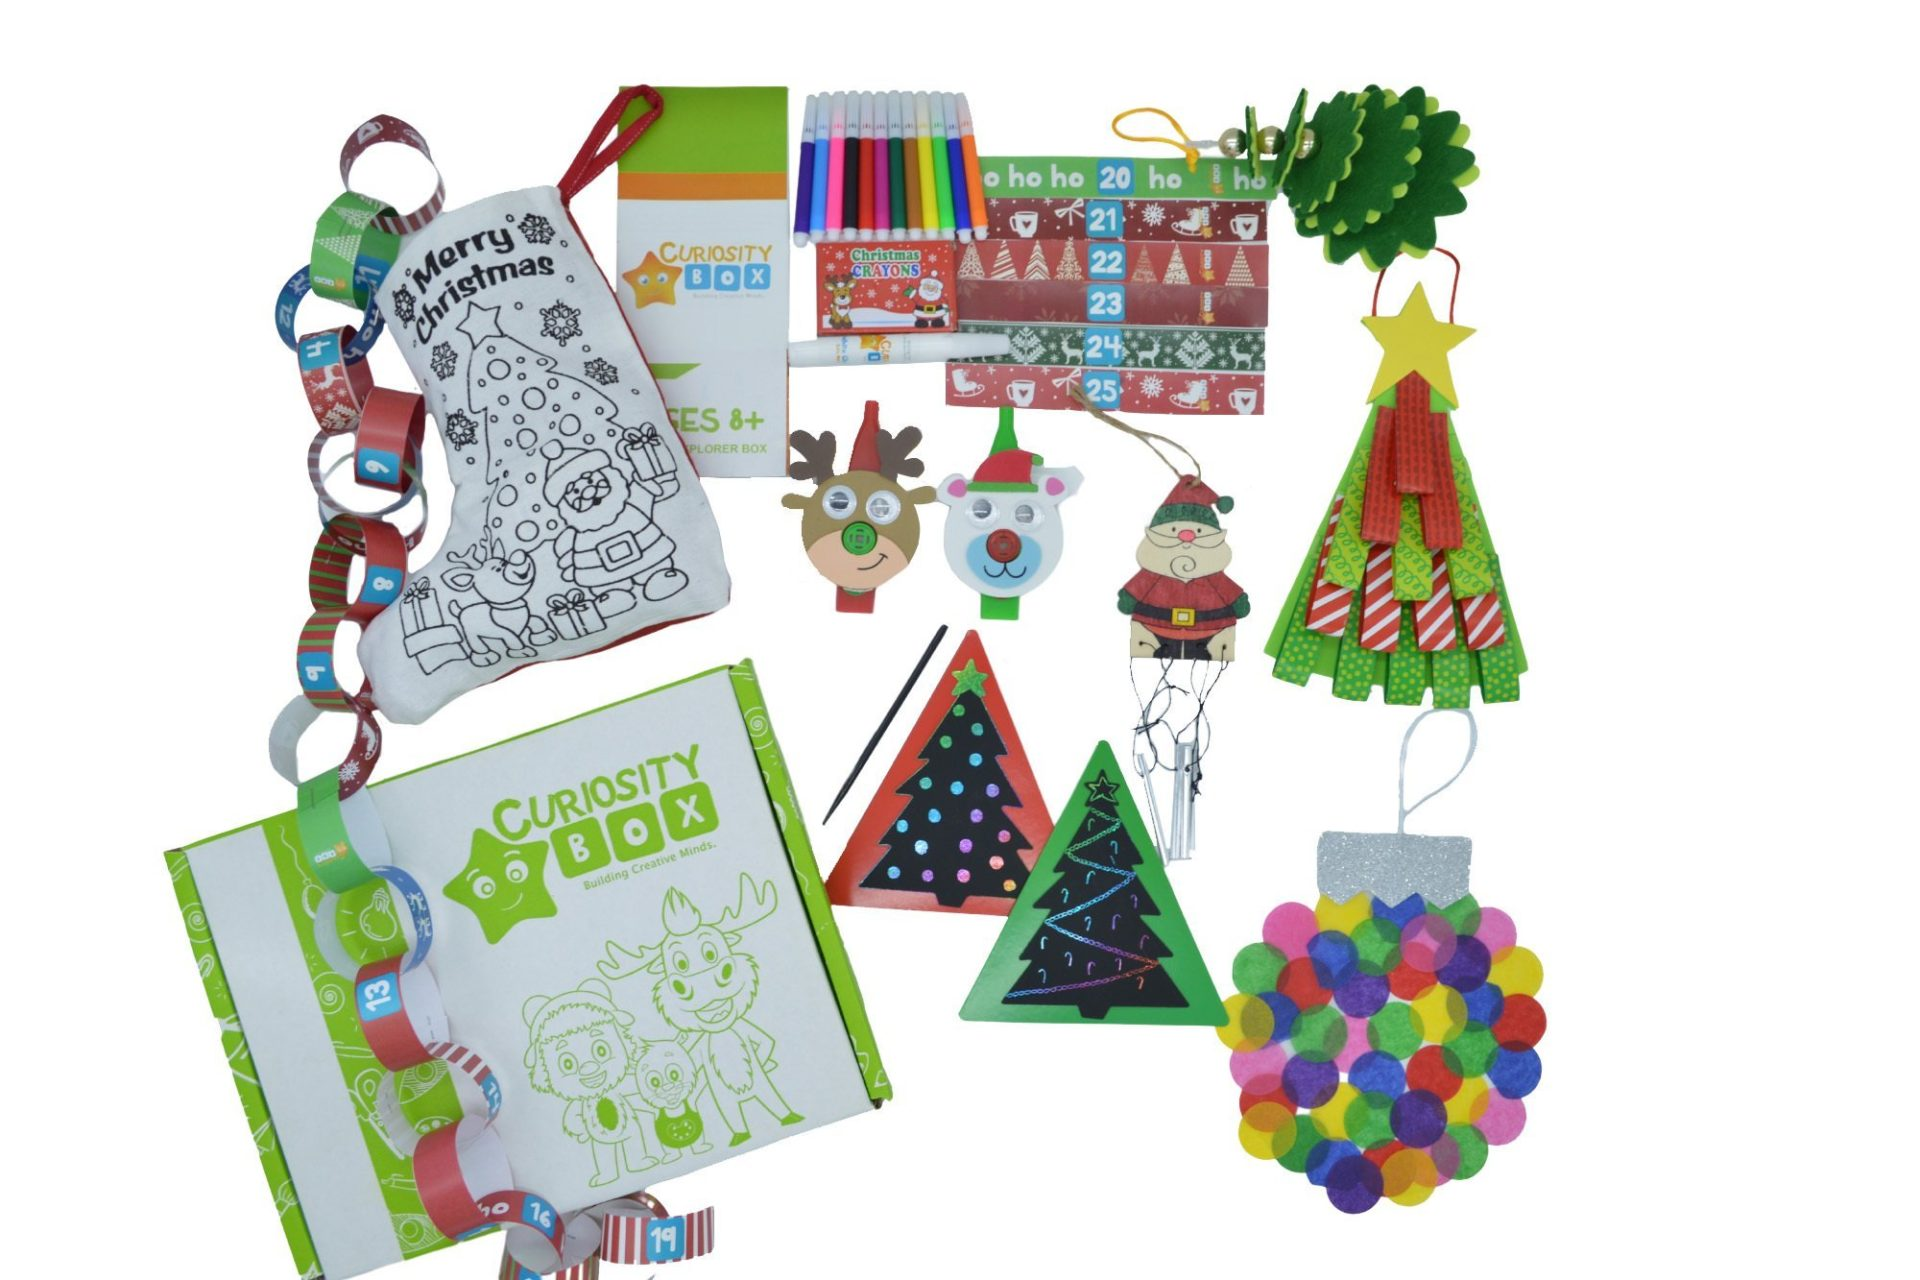 Crafty Christmas Countdown Craft Box for ages 8+- Curiosity-Box-Craft-and-Educational-Boxes-Kids-Monthly-Subscription-Box